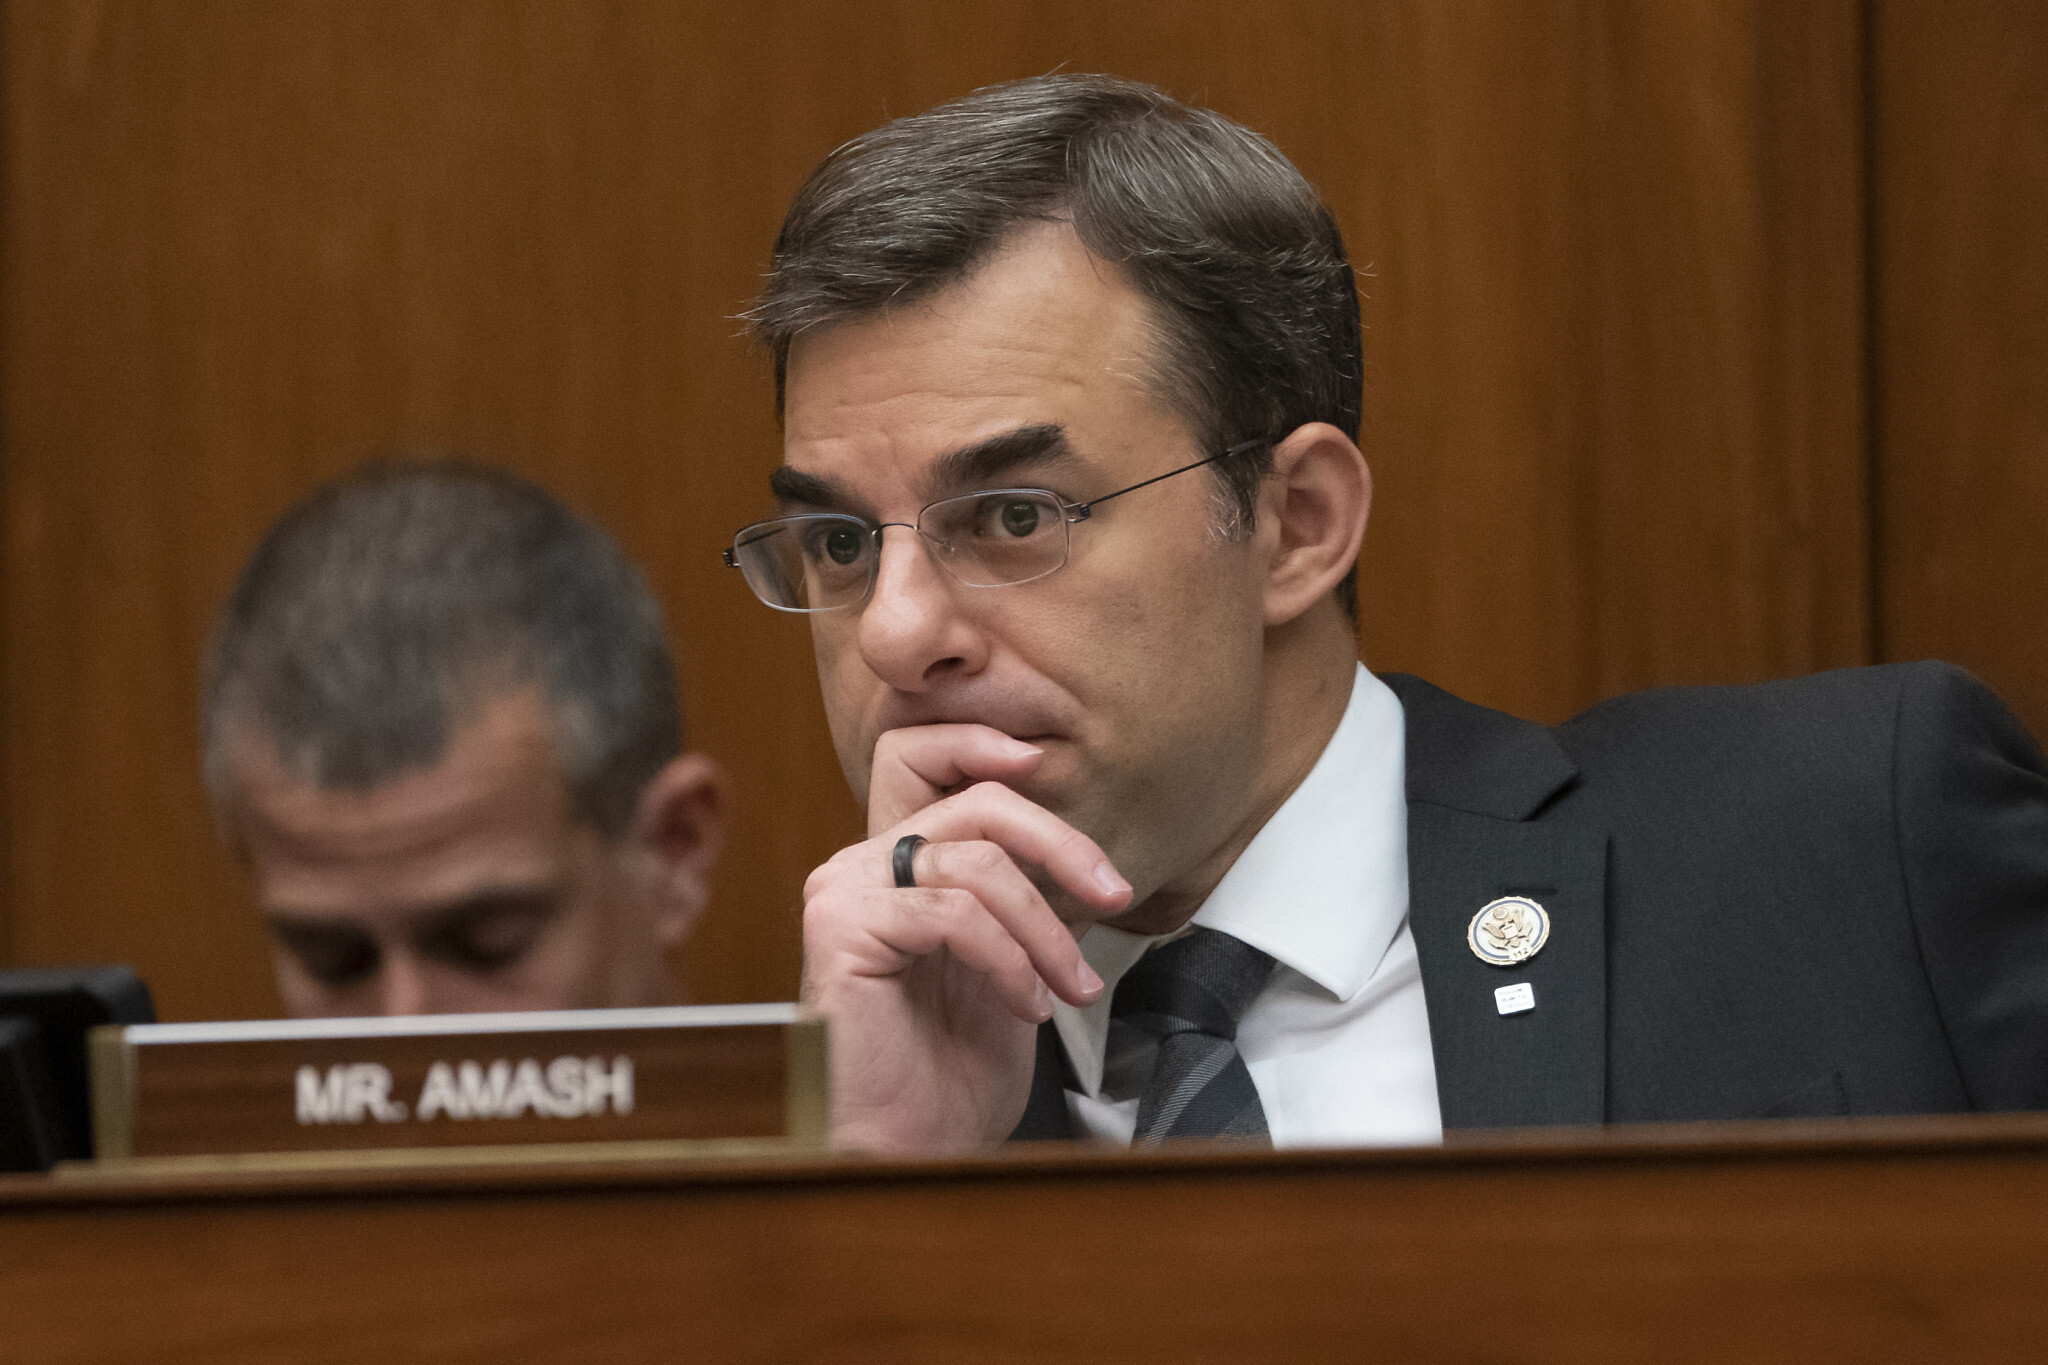 Amash dismisses concerns that his candidacy will help re-elect Trump